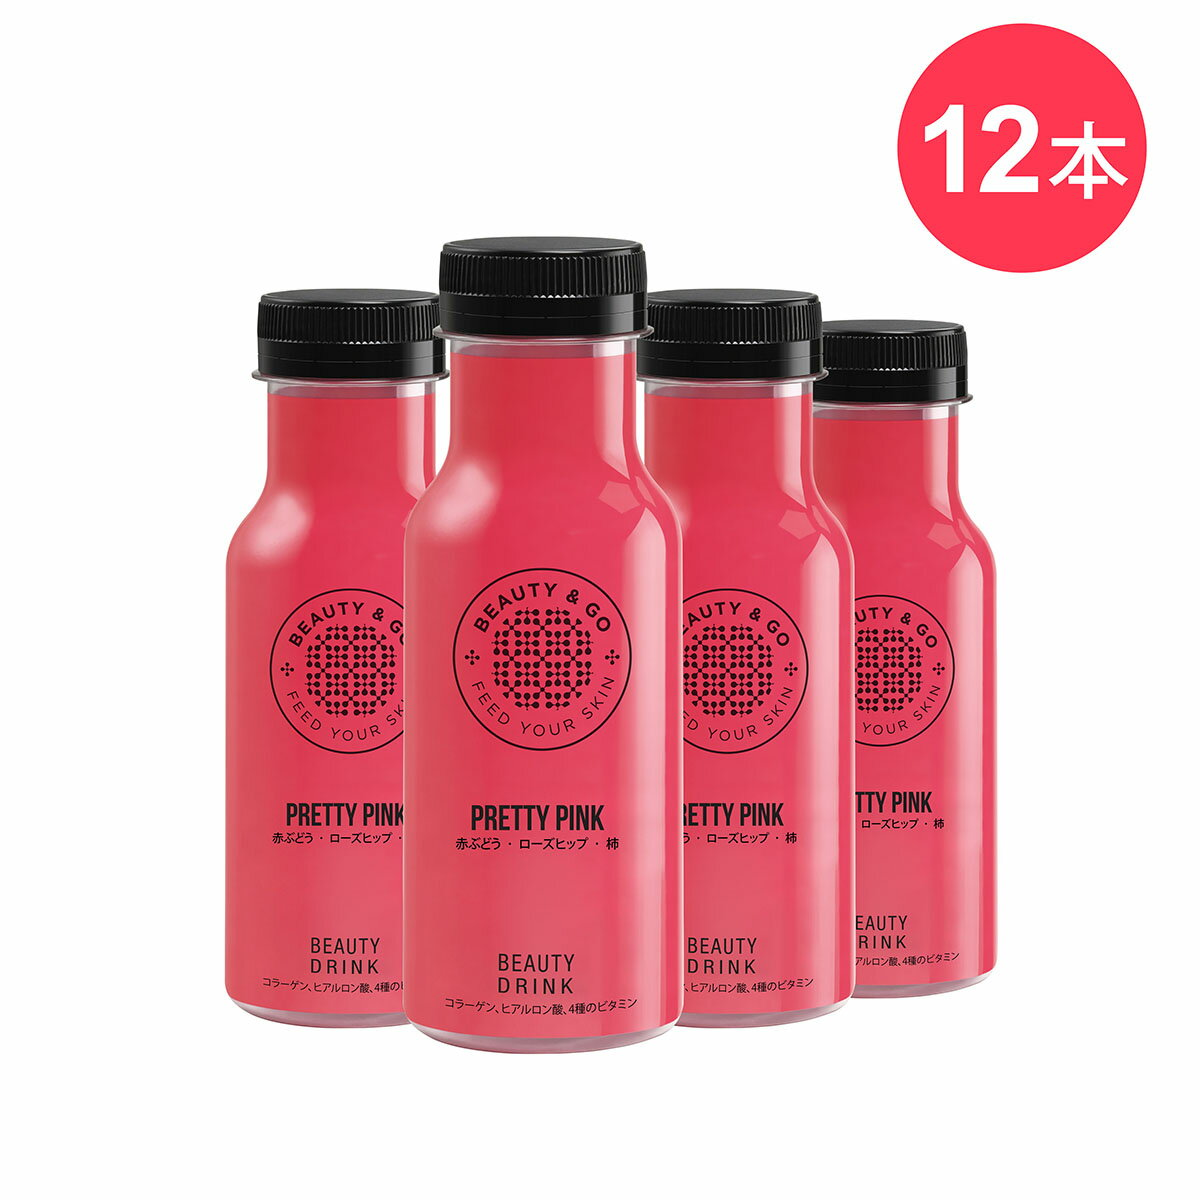 BEAUTY&GO PRETTY PINK (プリティーピンク)美容ドリンク ― 7日間のケア (12本)